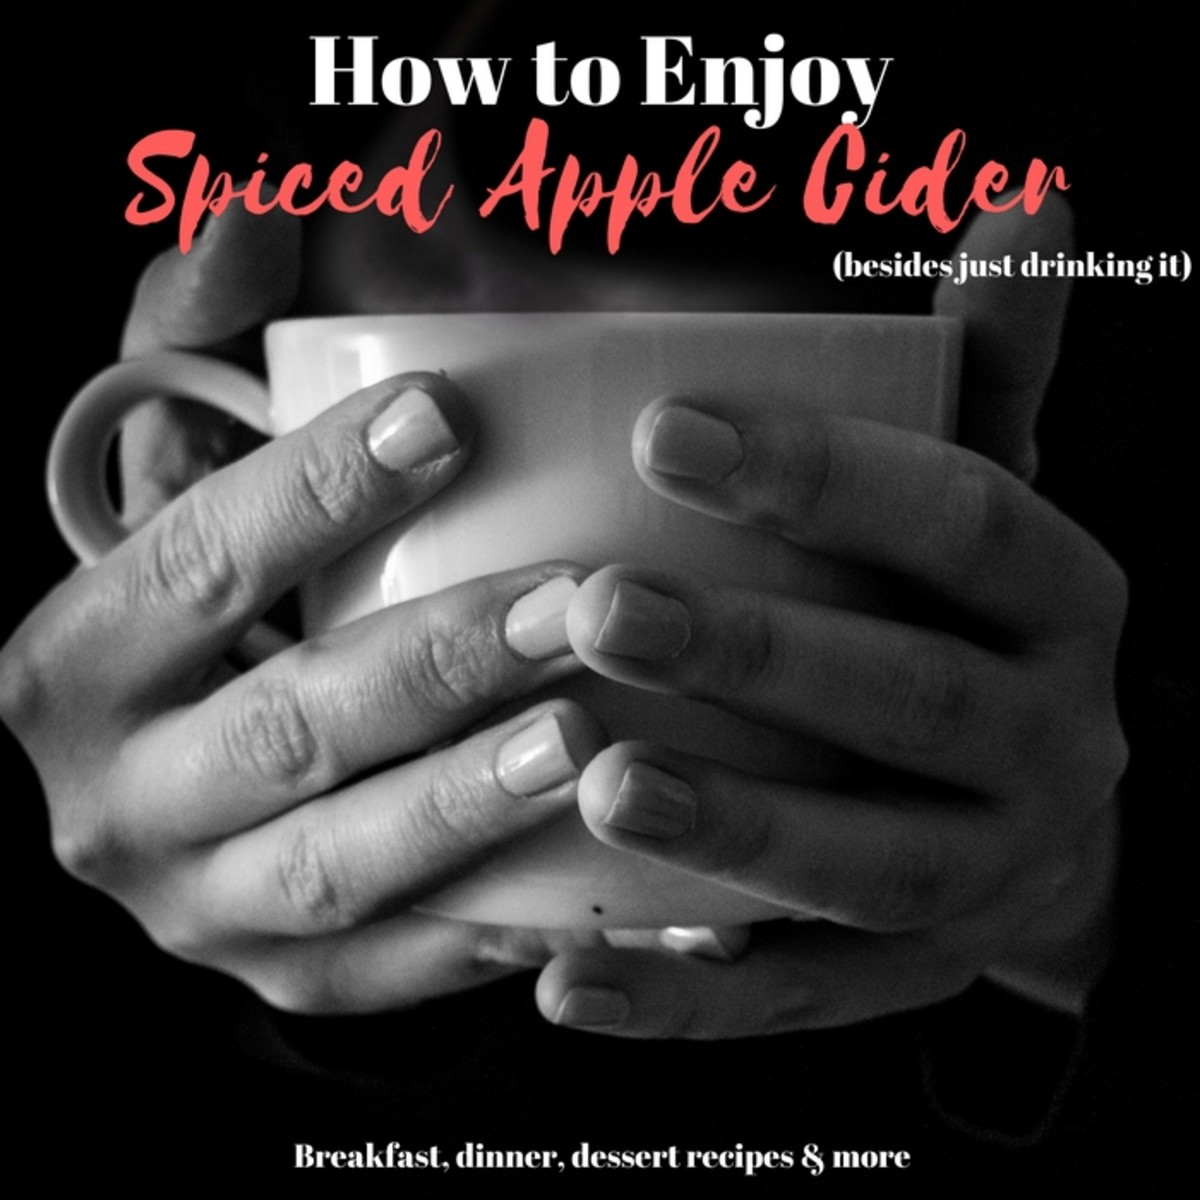 Recipes with Spiced Apple Cider